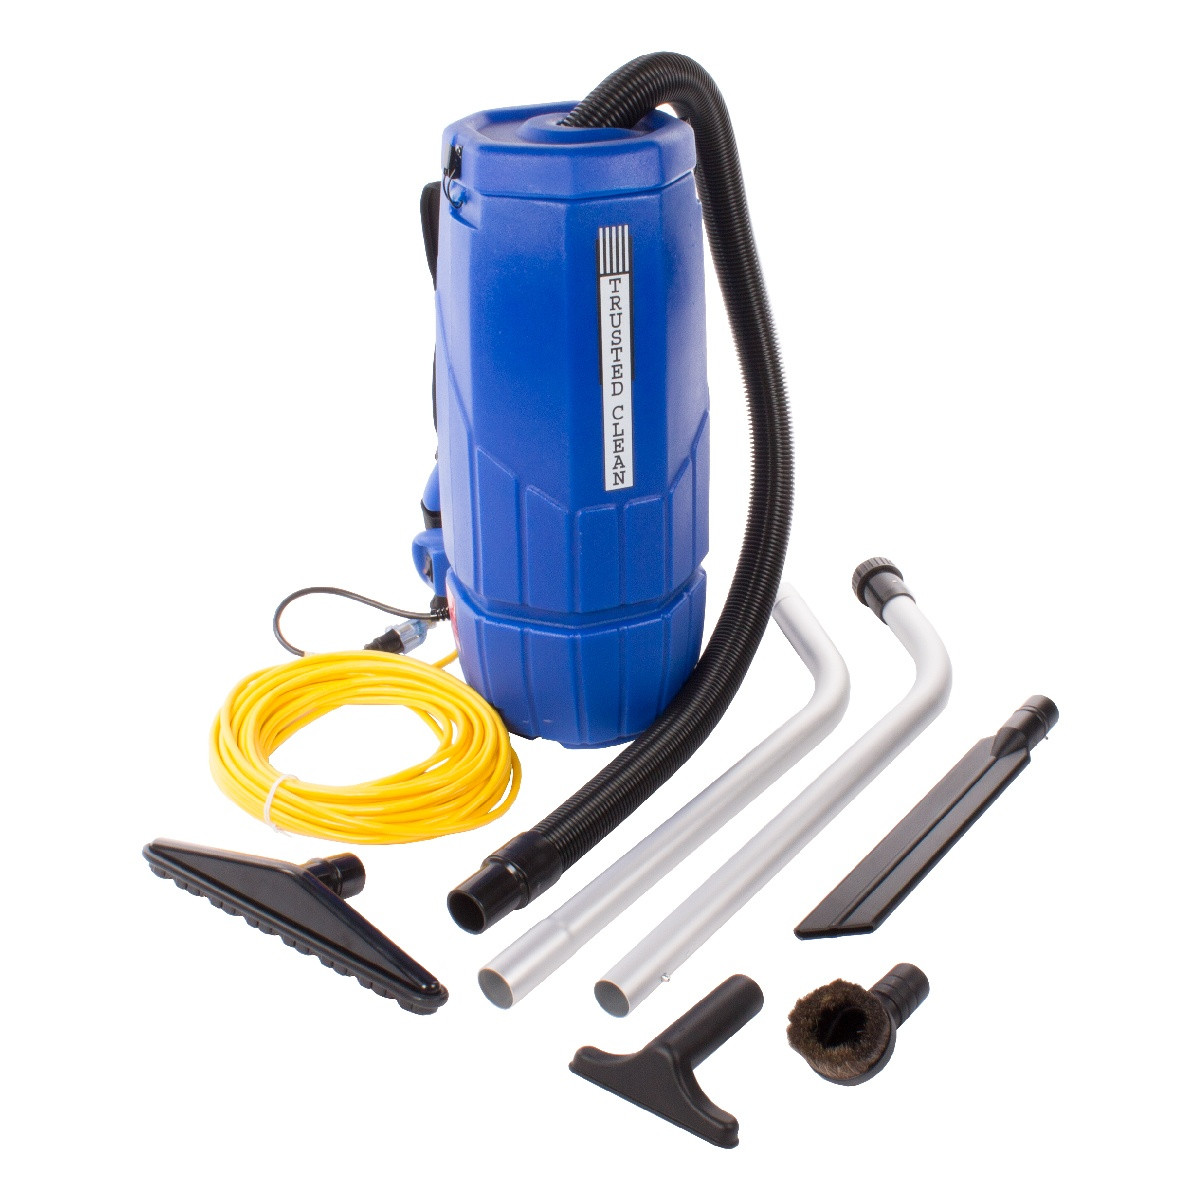 10 Quart Backpack Vacuum Cleaner By Trusted Clean